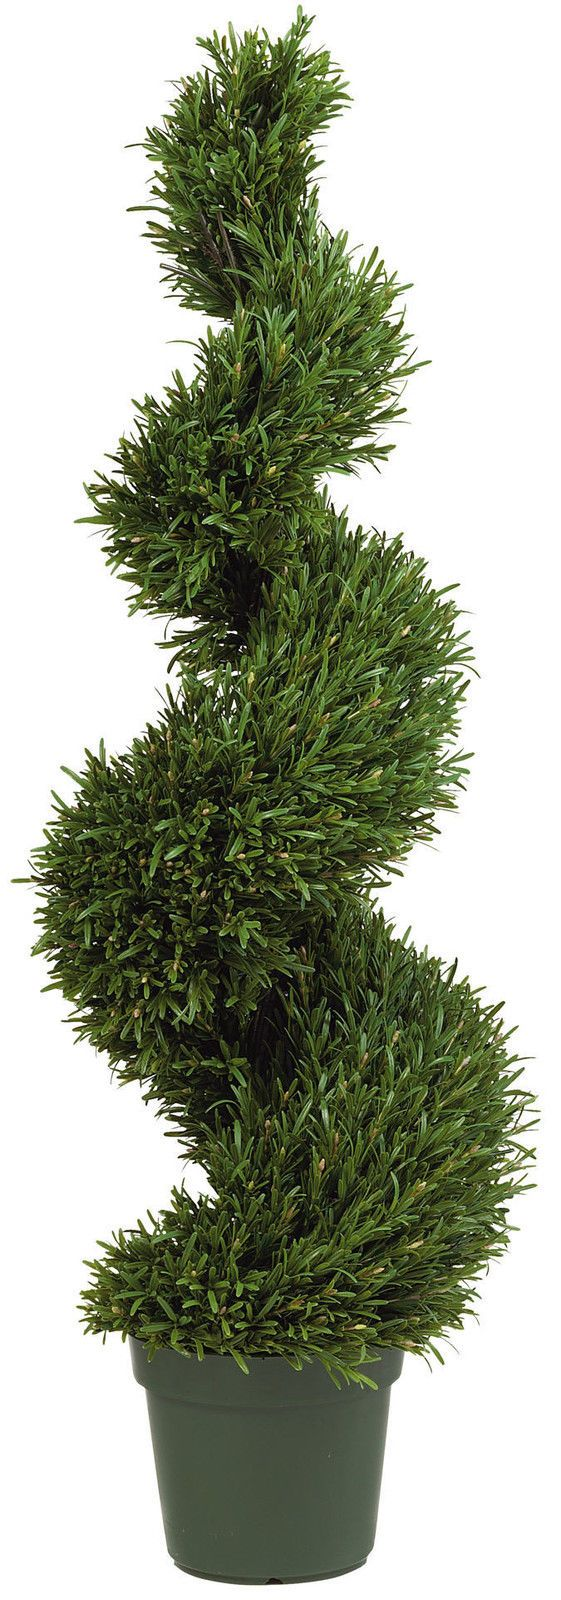 Artificial Rosemary Spiral, 3ft, 4ft or 5ft high -just the best Artificial Topiary Tree there is, from Red Hot Plants.